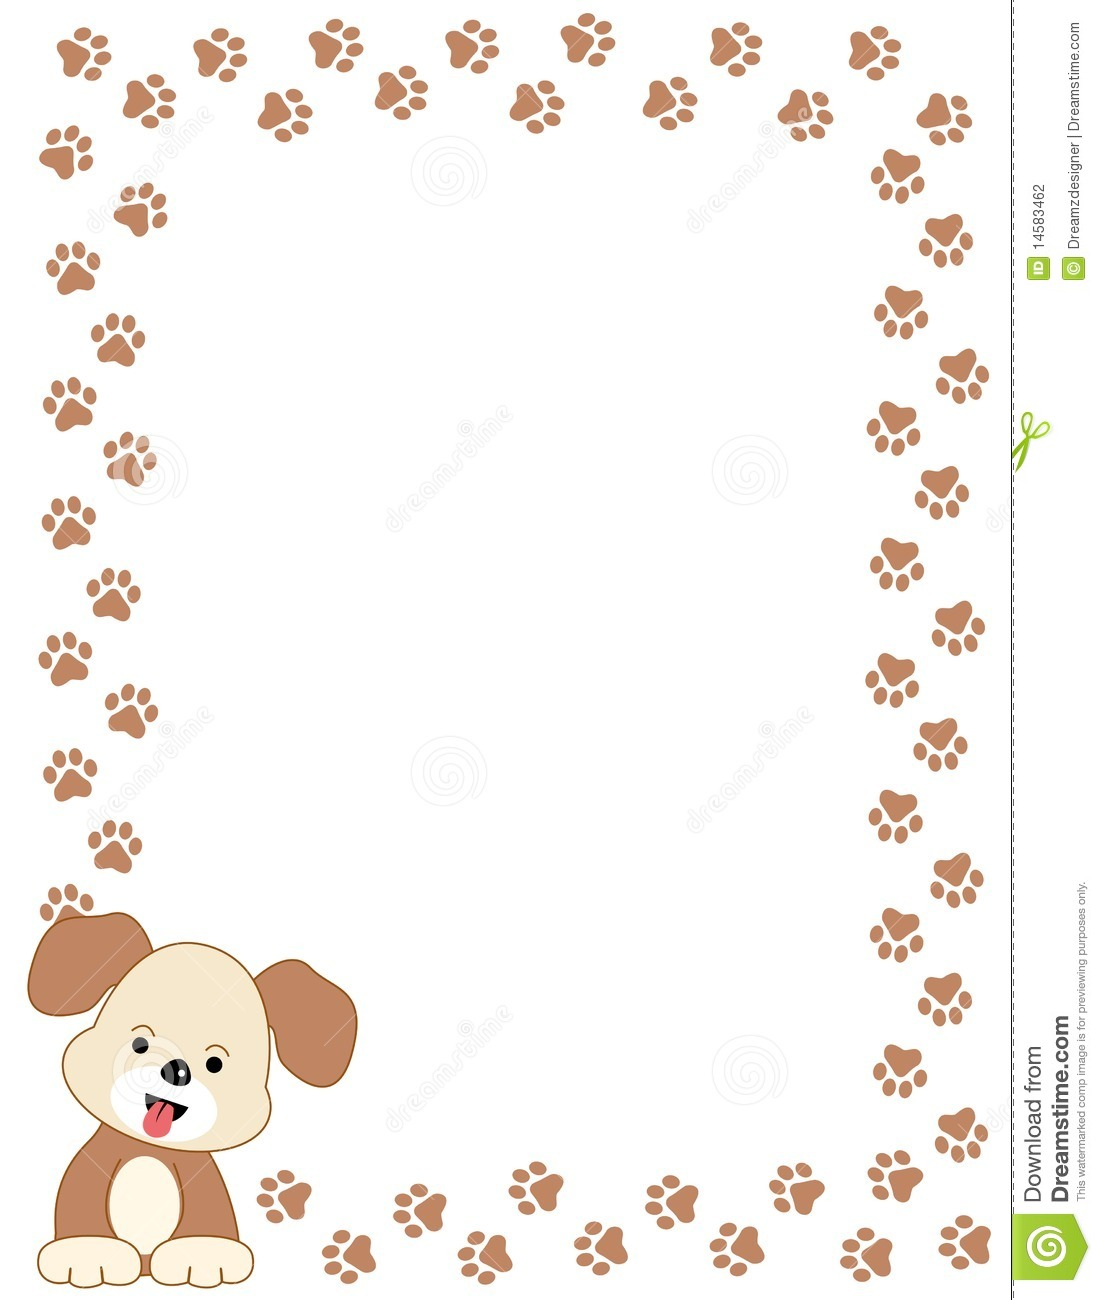 Cute pets [dogs] paw prints border with a cute brown dog.